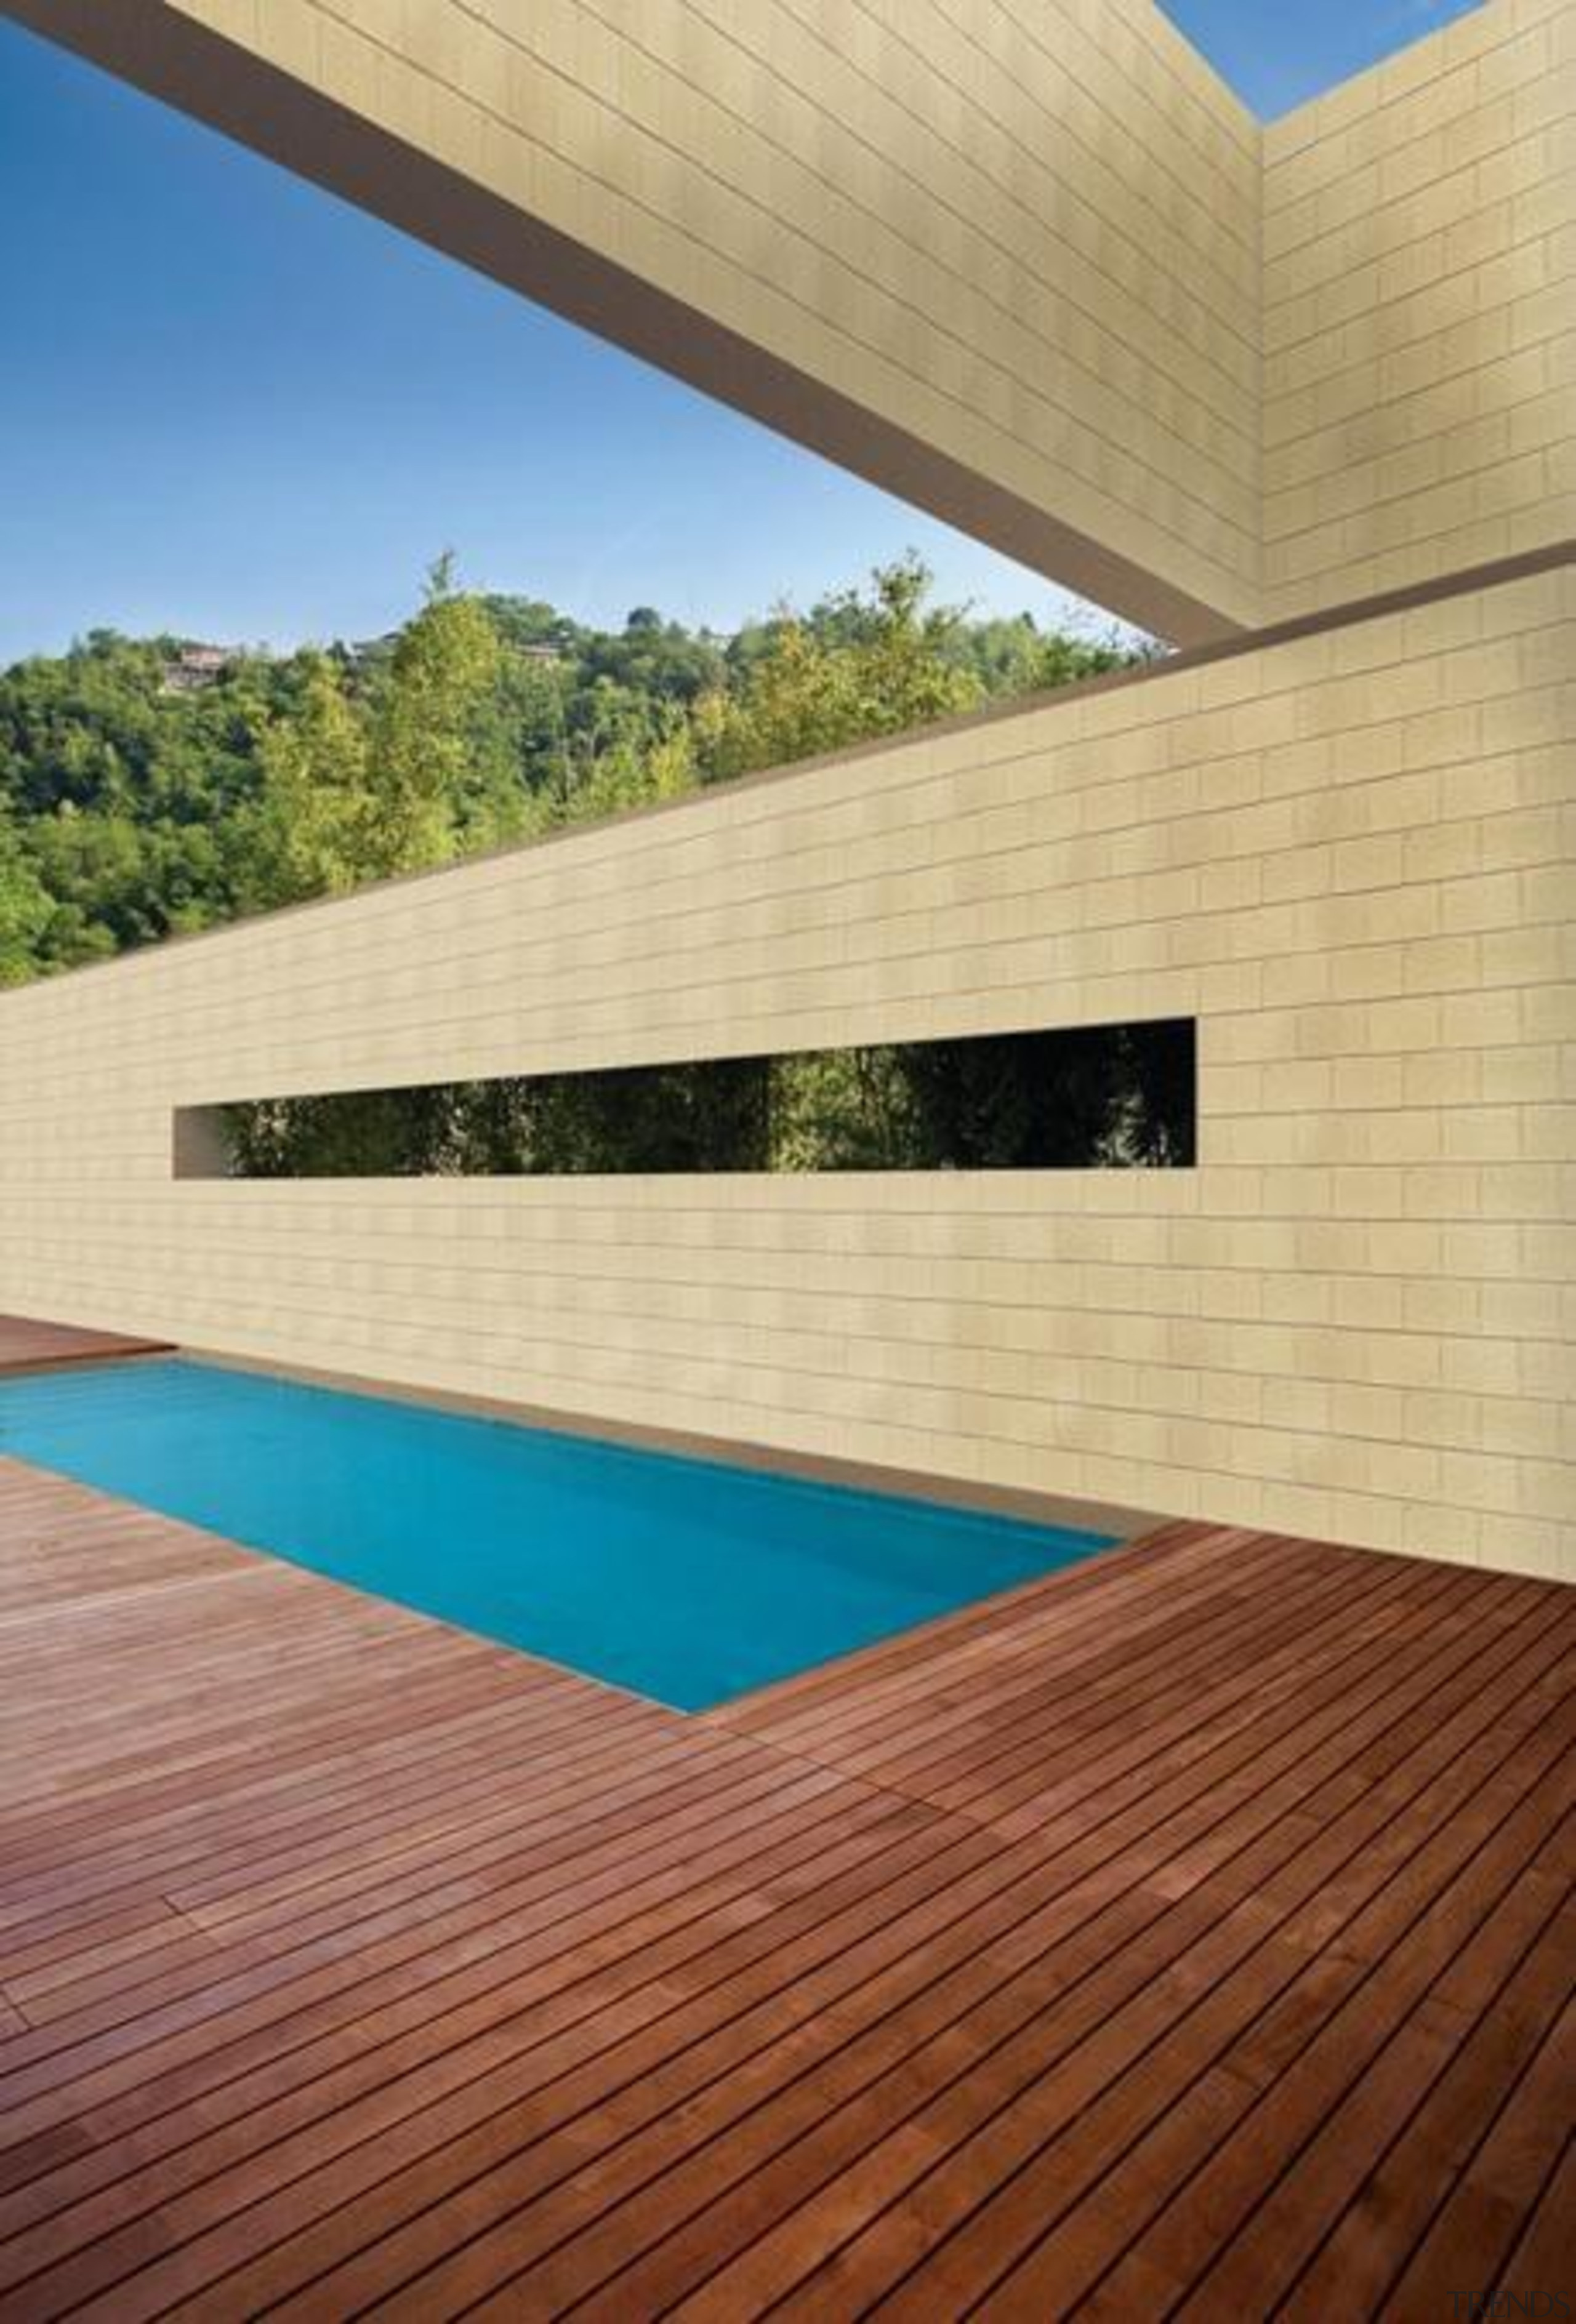 When selecting materials for a new home it architecture, daylighting, facade, floor, hardwood, house, property, real estate, roof, sky, swimming pool, wall, wood, orange, brown